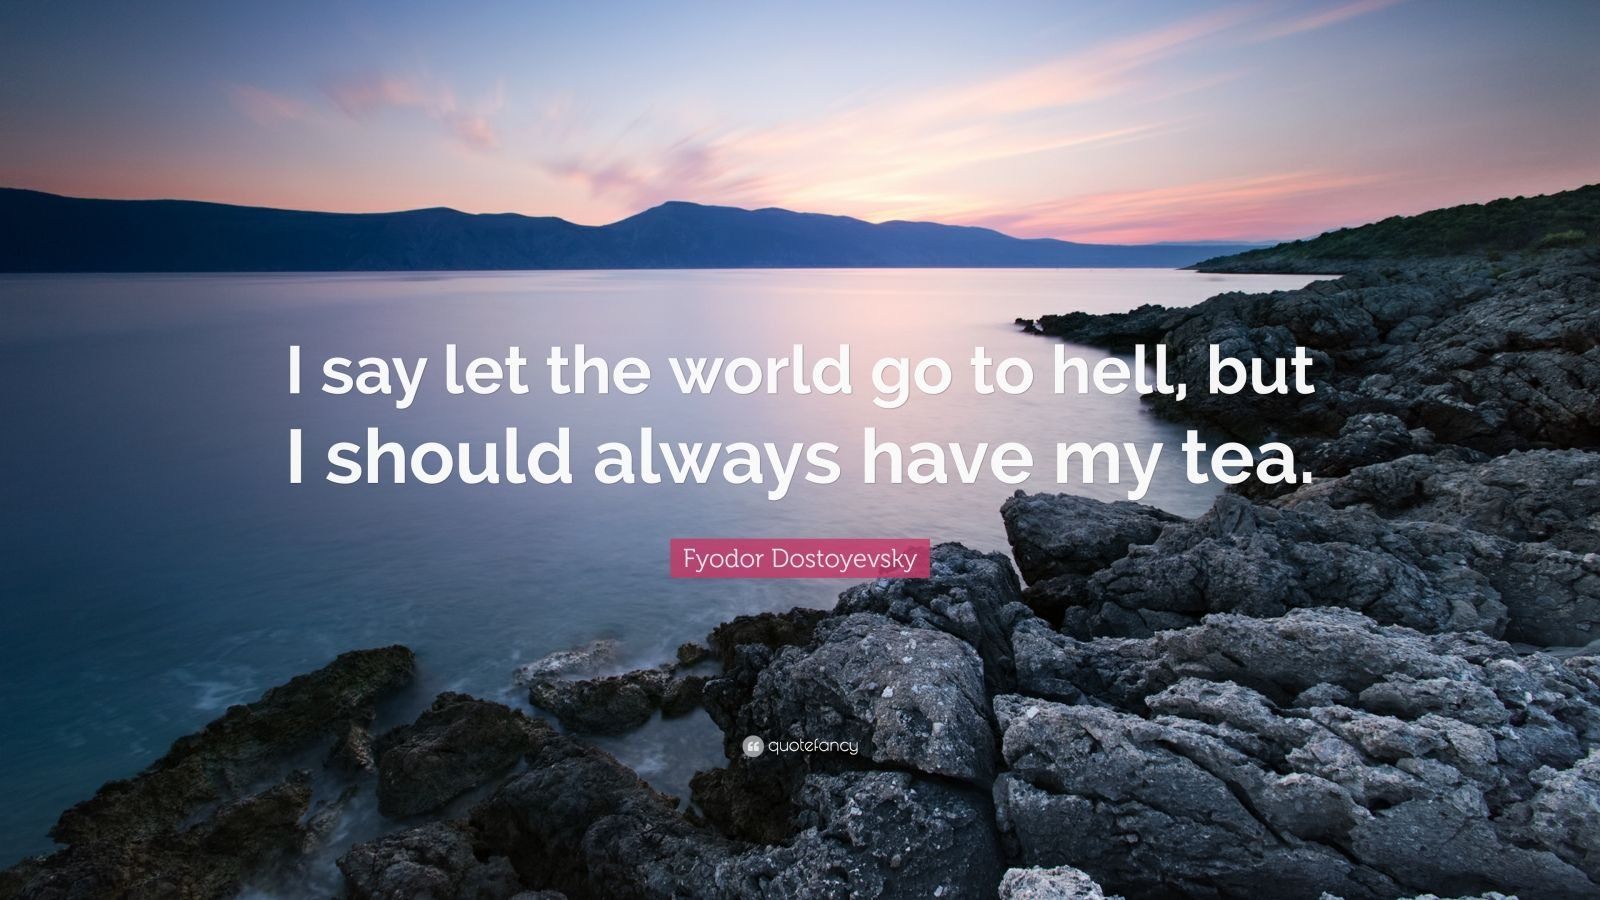 """Fyodor Dostoyevsky Quote: """"I say let the world go to hell, but I should always have my tea."""""""